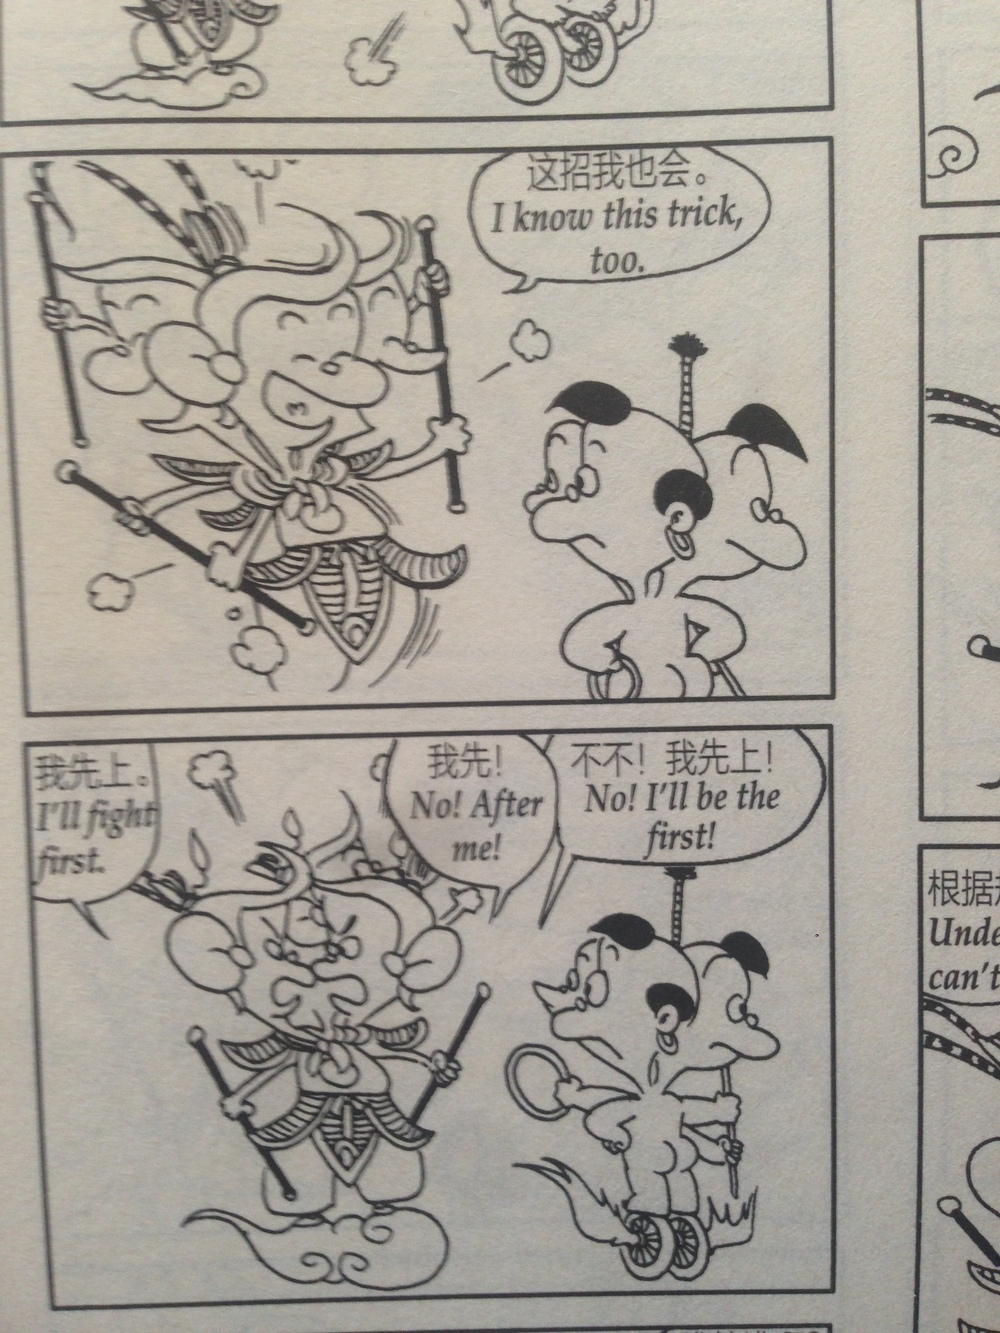 Mr. Tsai's comics depict ancient Chinese wisdom and writings in a fun cartoon style all his own.